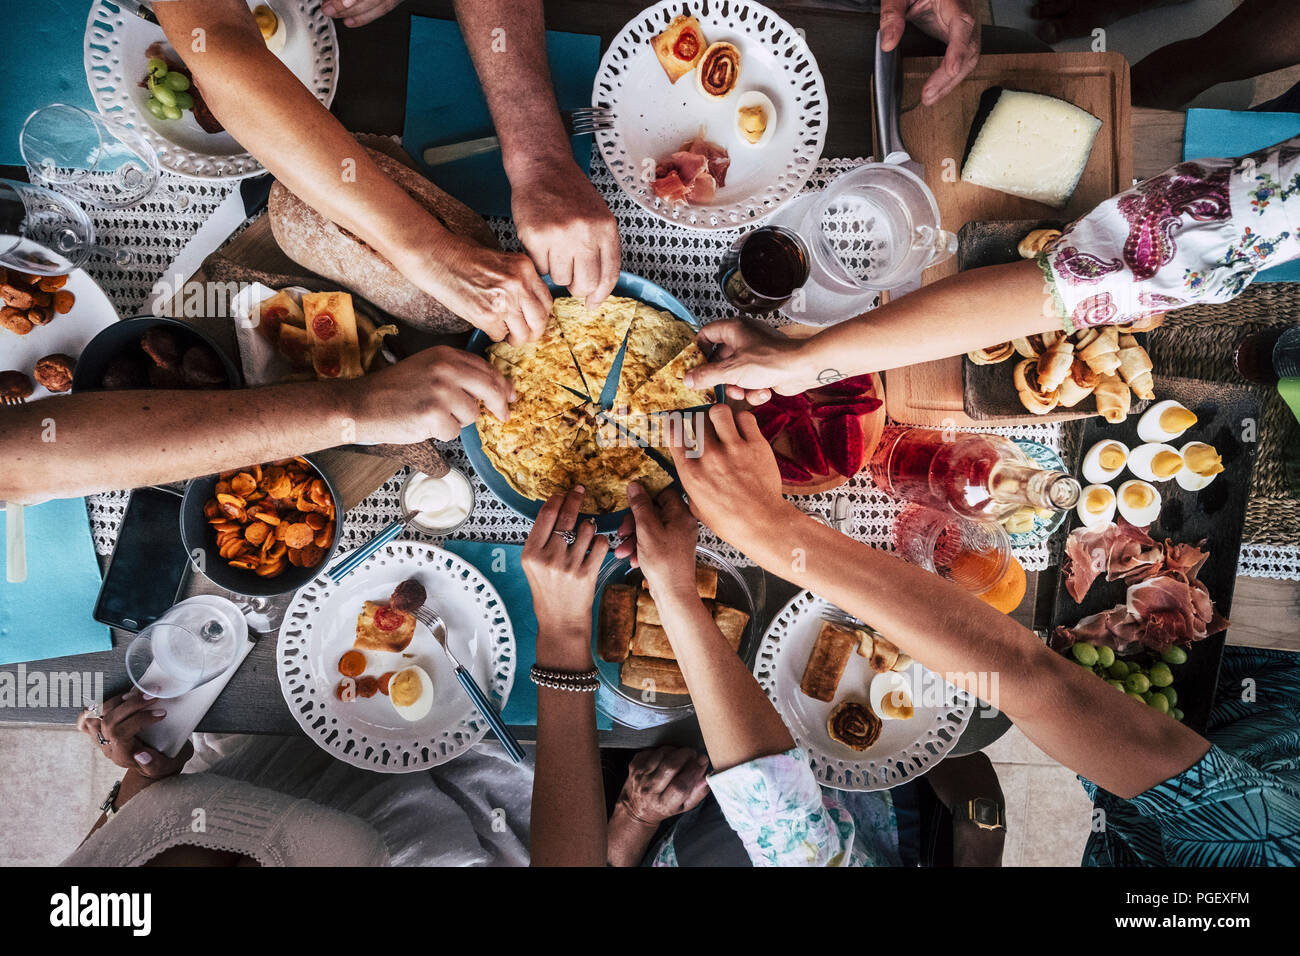 Food Catering Cuisine Culinary Gourmet Party Cheers Concept friendship and dinner together. mobile phones on the table, pattern and background colorfu - Stock Image